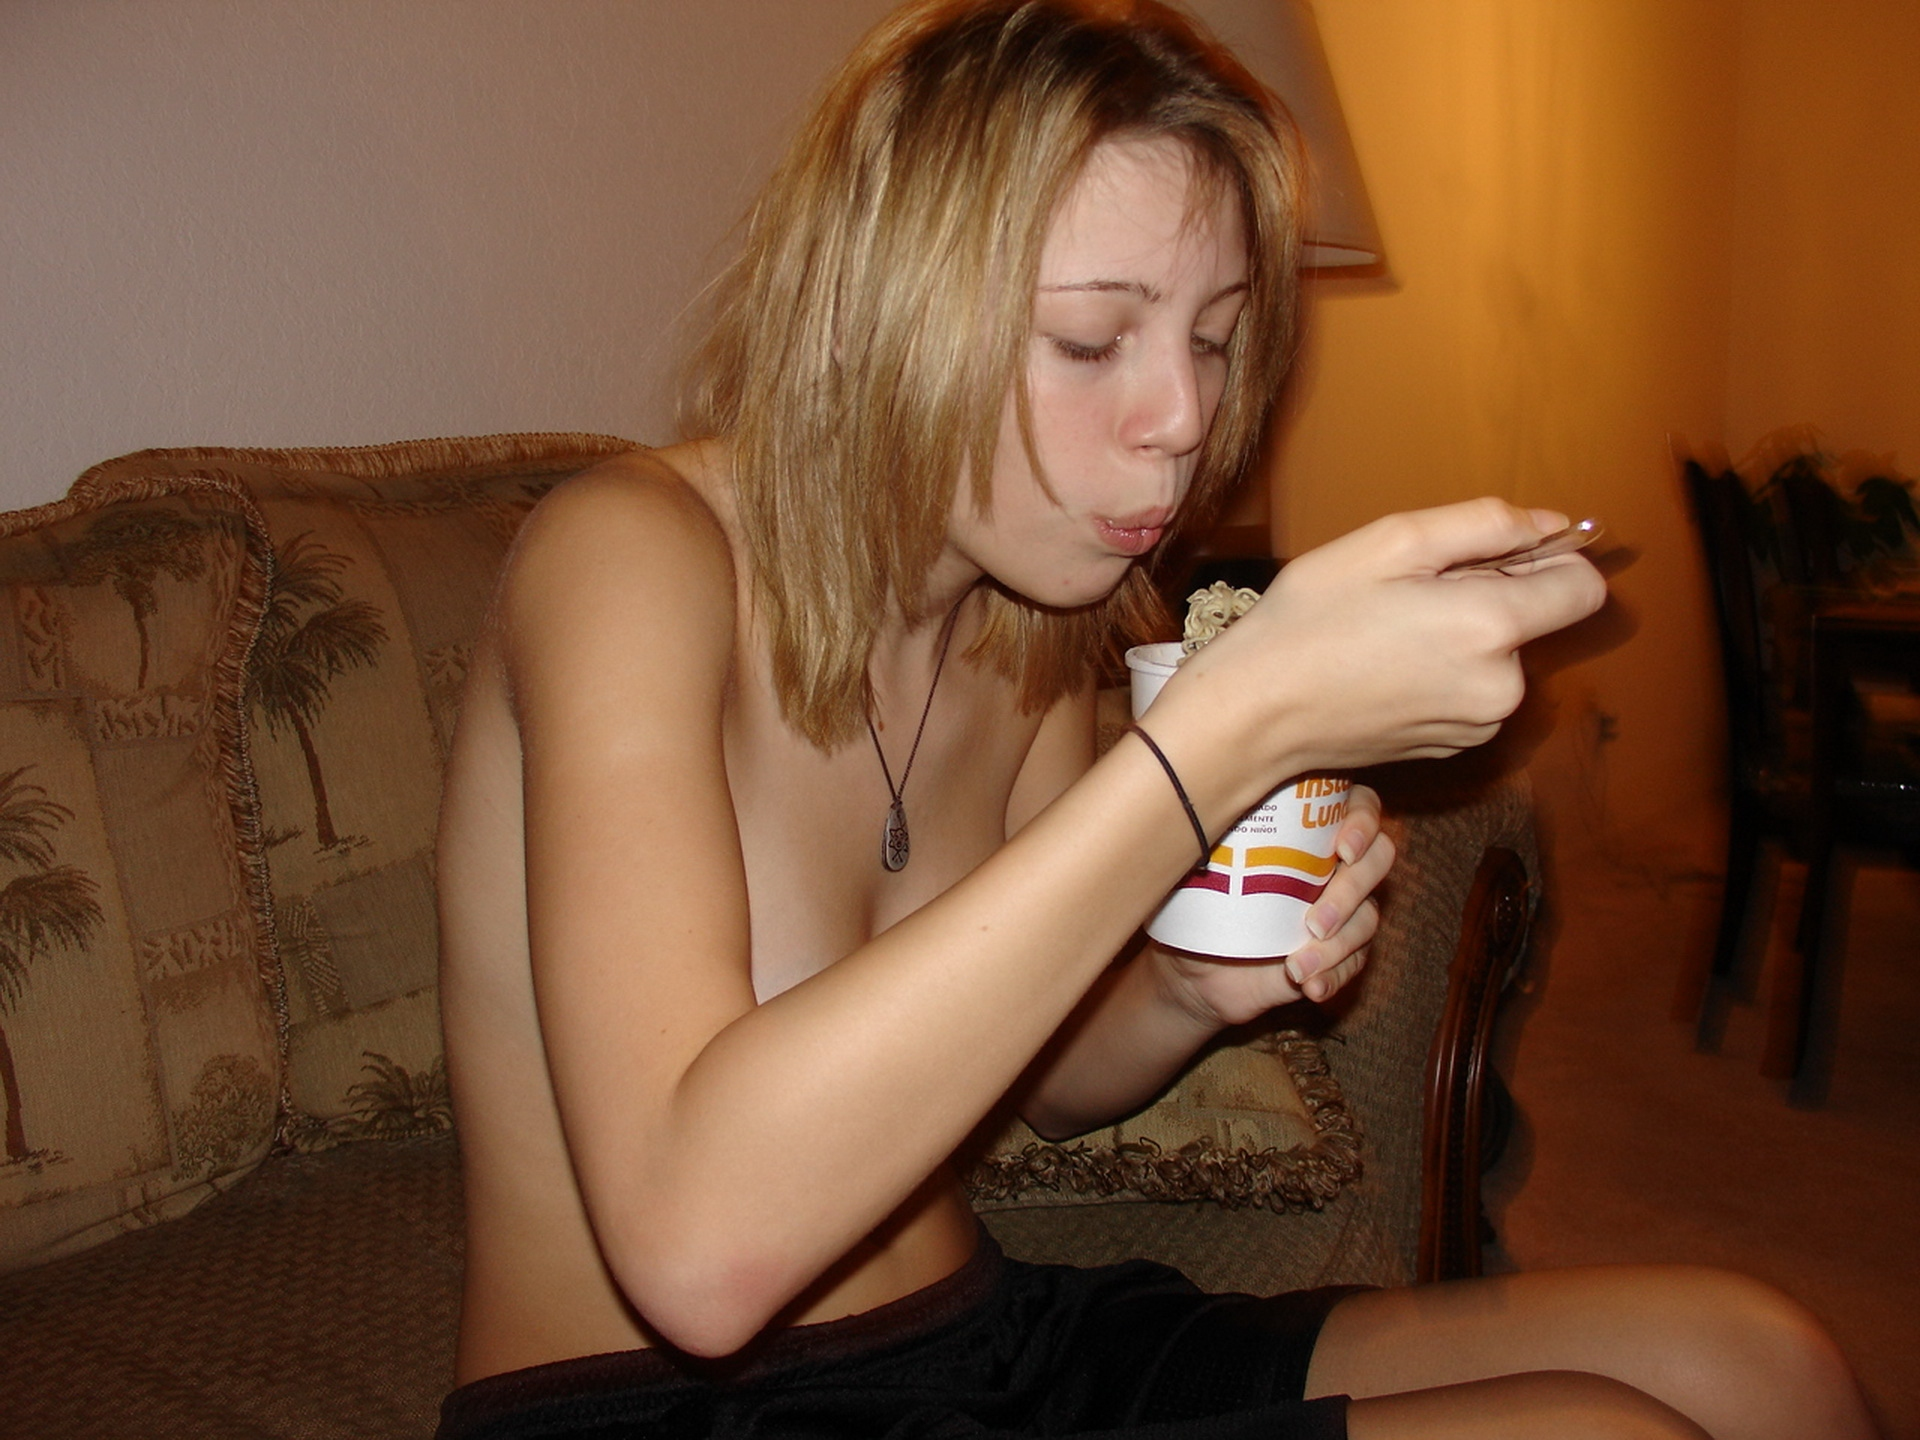 nude-young-amateur-girl-on-the-sofa-13